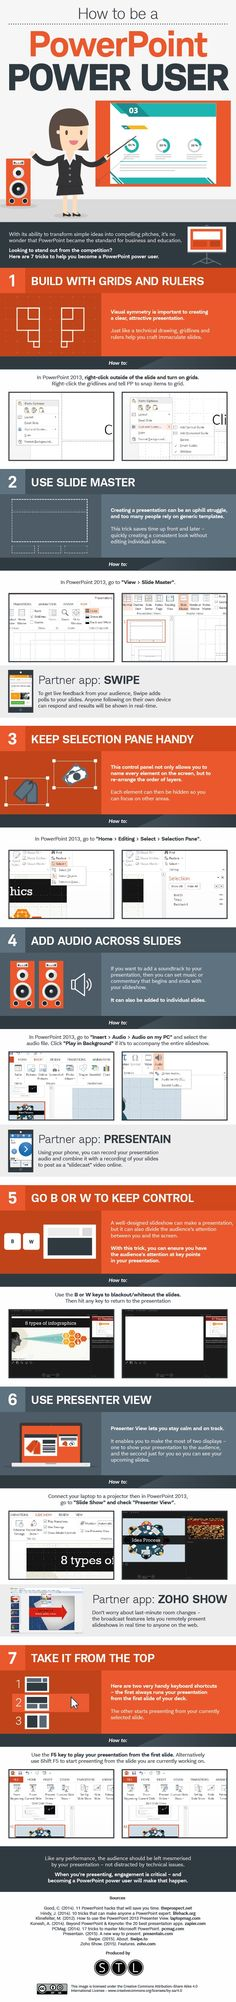 How to Be a PowerPoint Power User #infographic ~ Visualistan